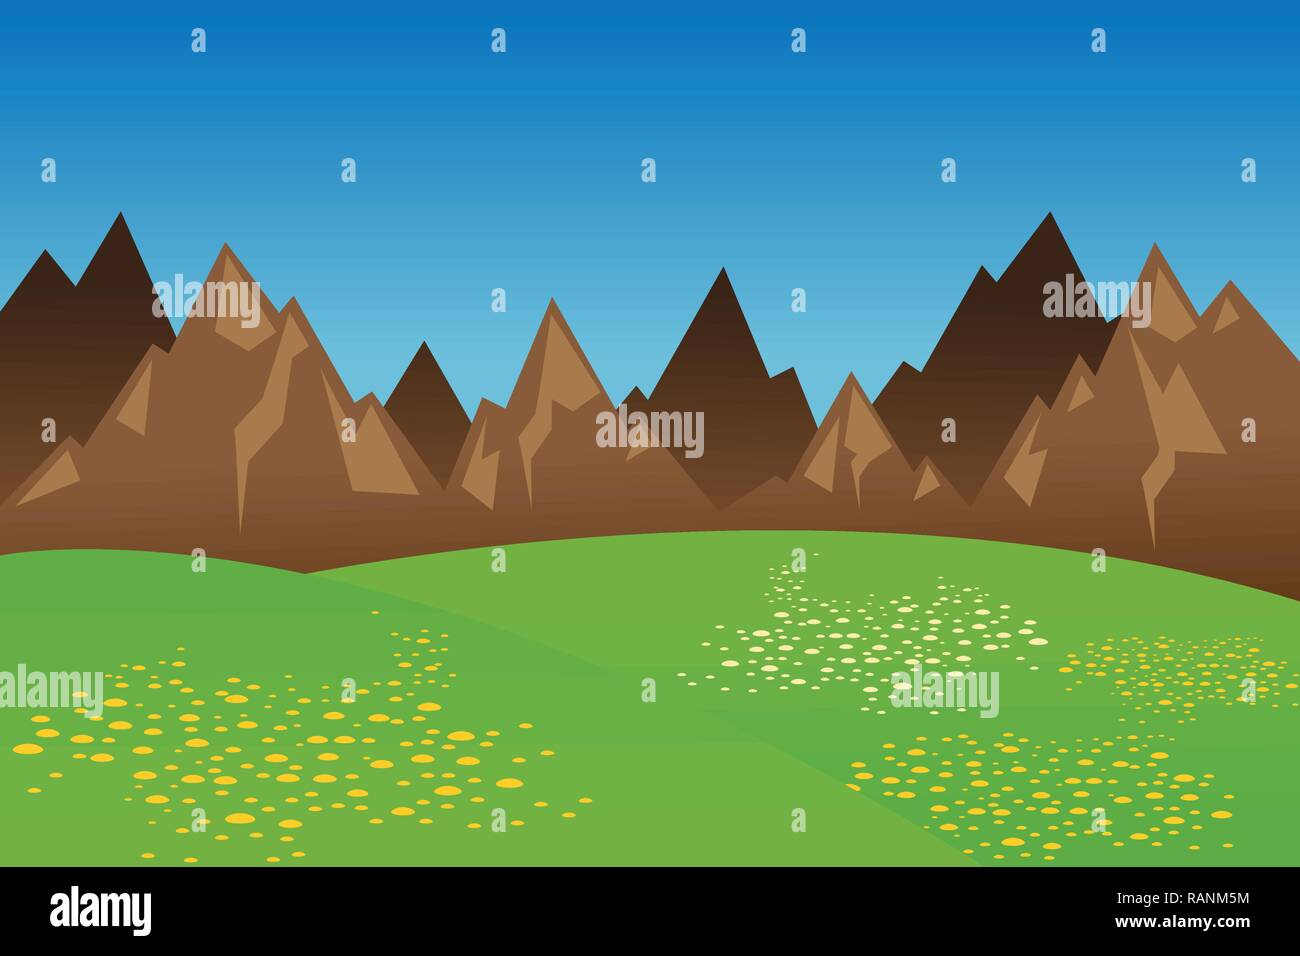 Mountain range wide green meadow with flowers vector illustration EPS10 - Stock Vector